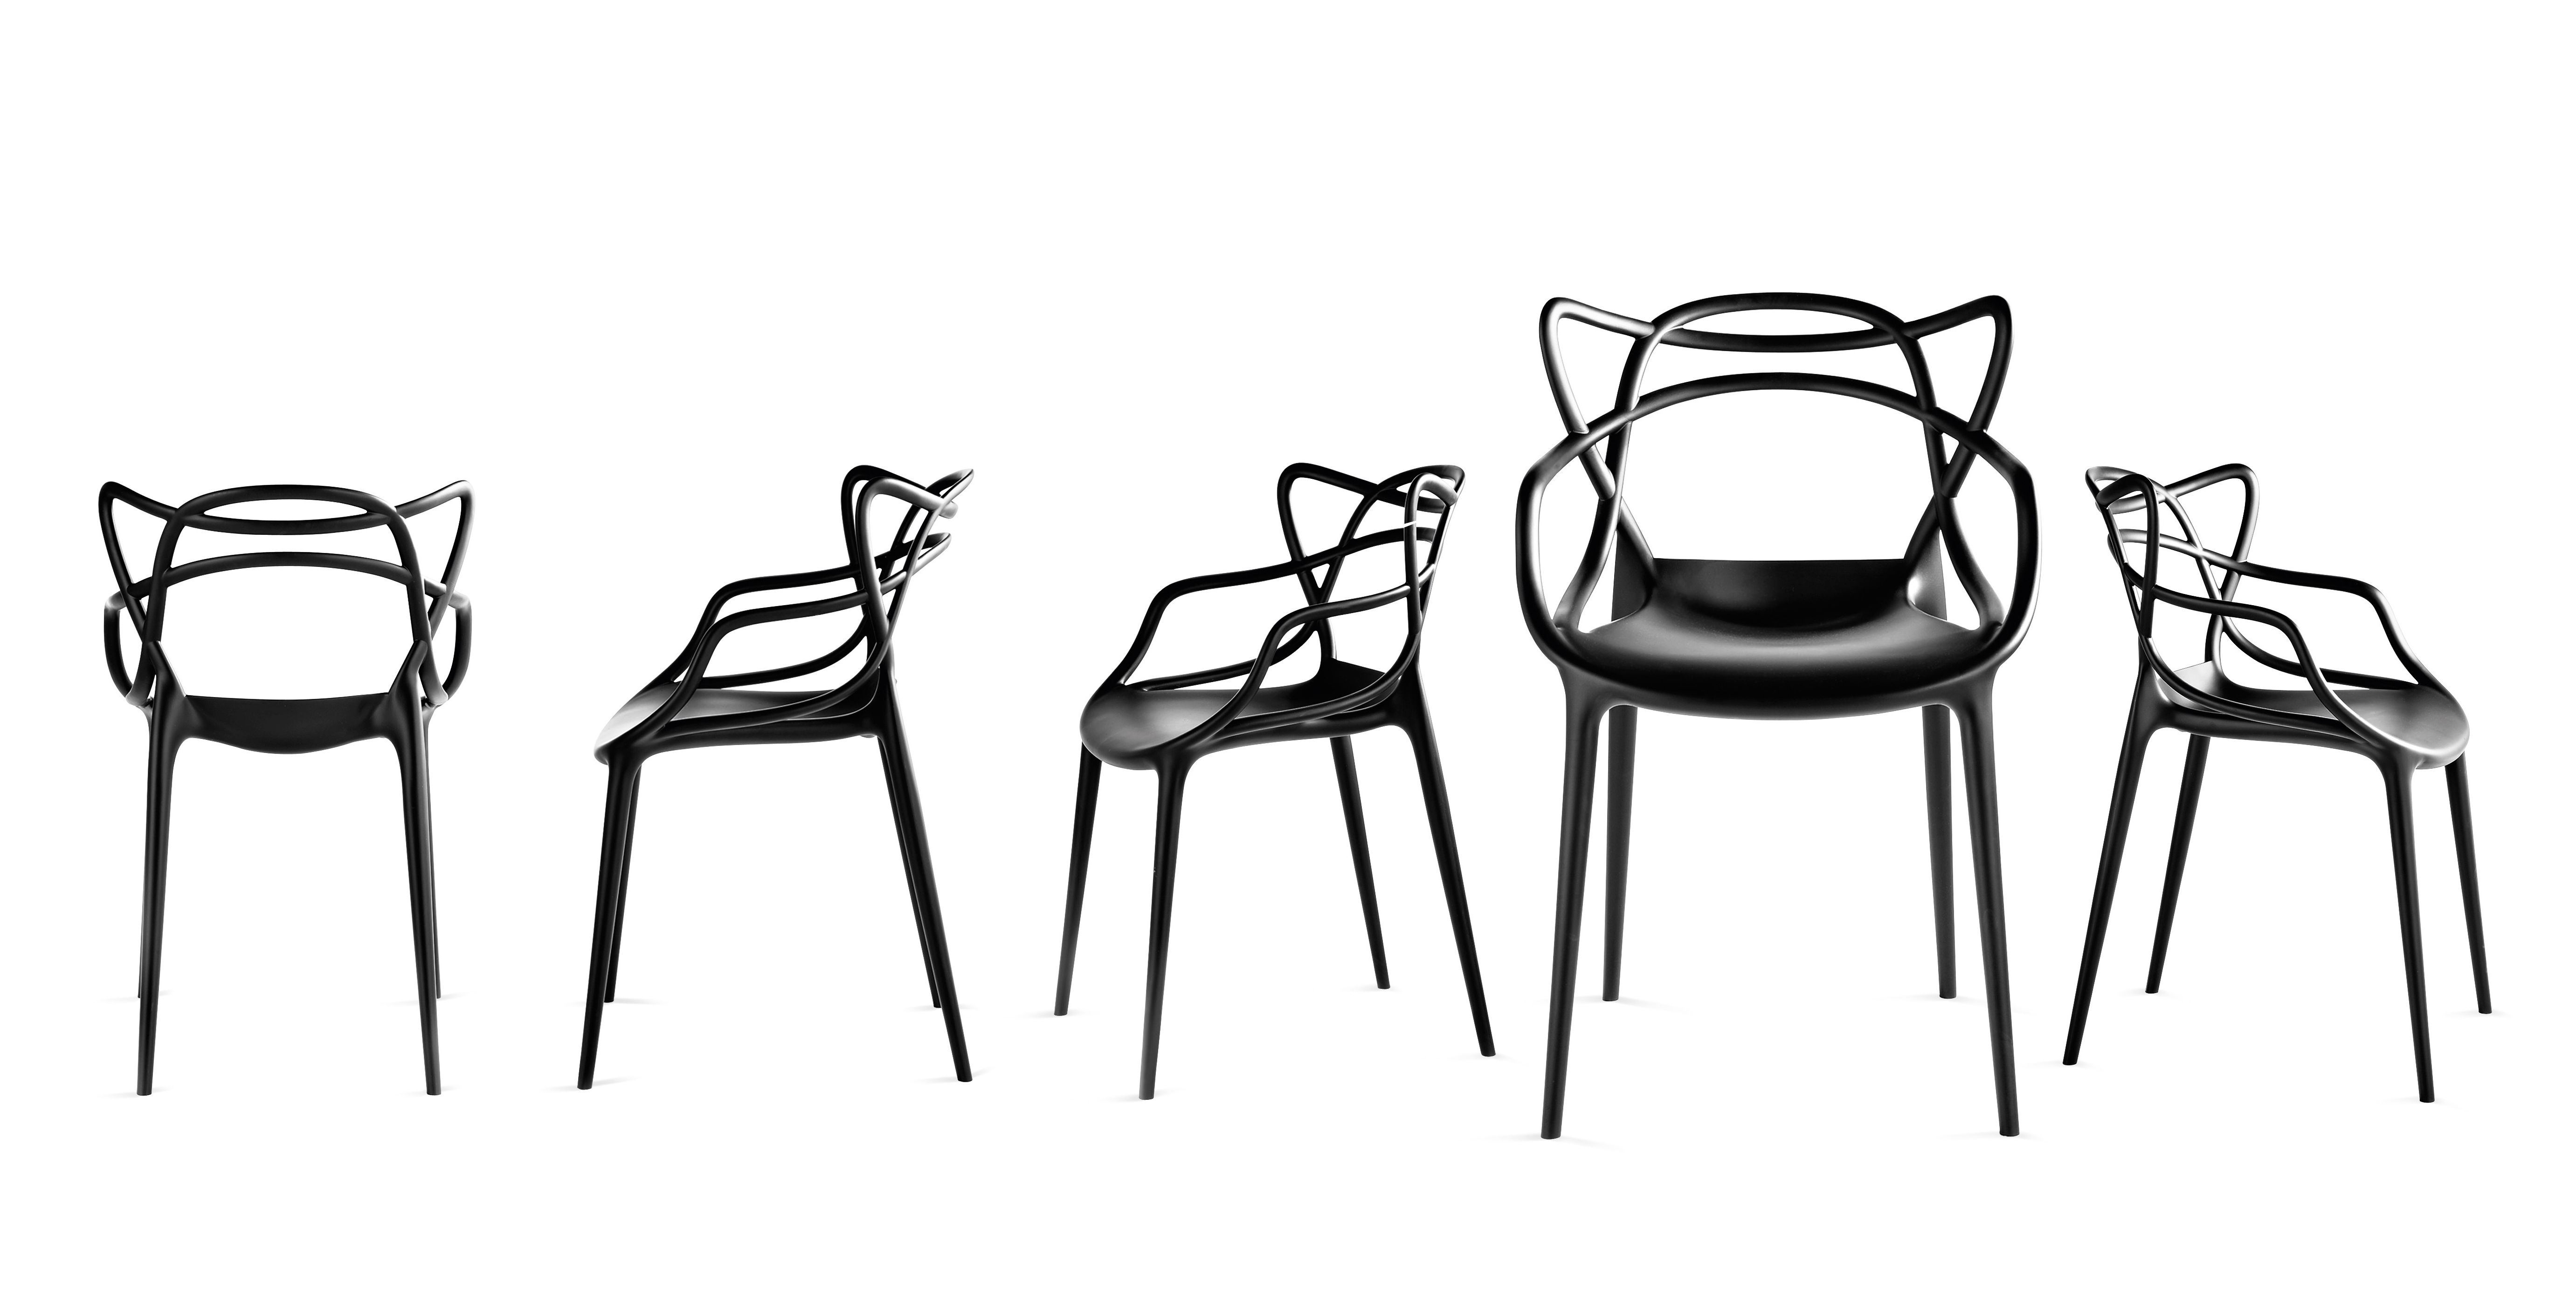 Prod Fauteuil Empilable Masters Plastique Kartell Ref5865 09 additionally Prod Fauteuil Empilable Masters Plastique Kartell Ref5865 14 together with Prod Fauteuil Empilable Masters Plastique Kartell Ref5865 09 as well  on bloc note starck